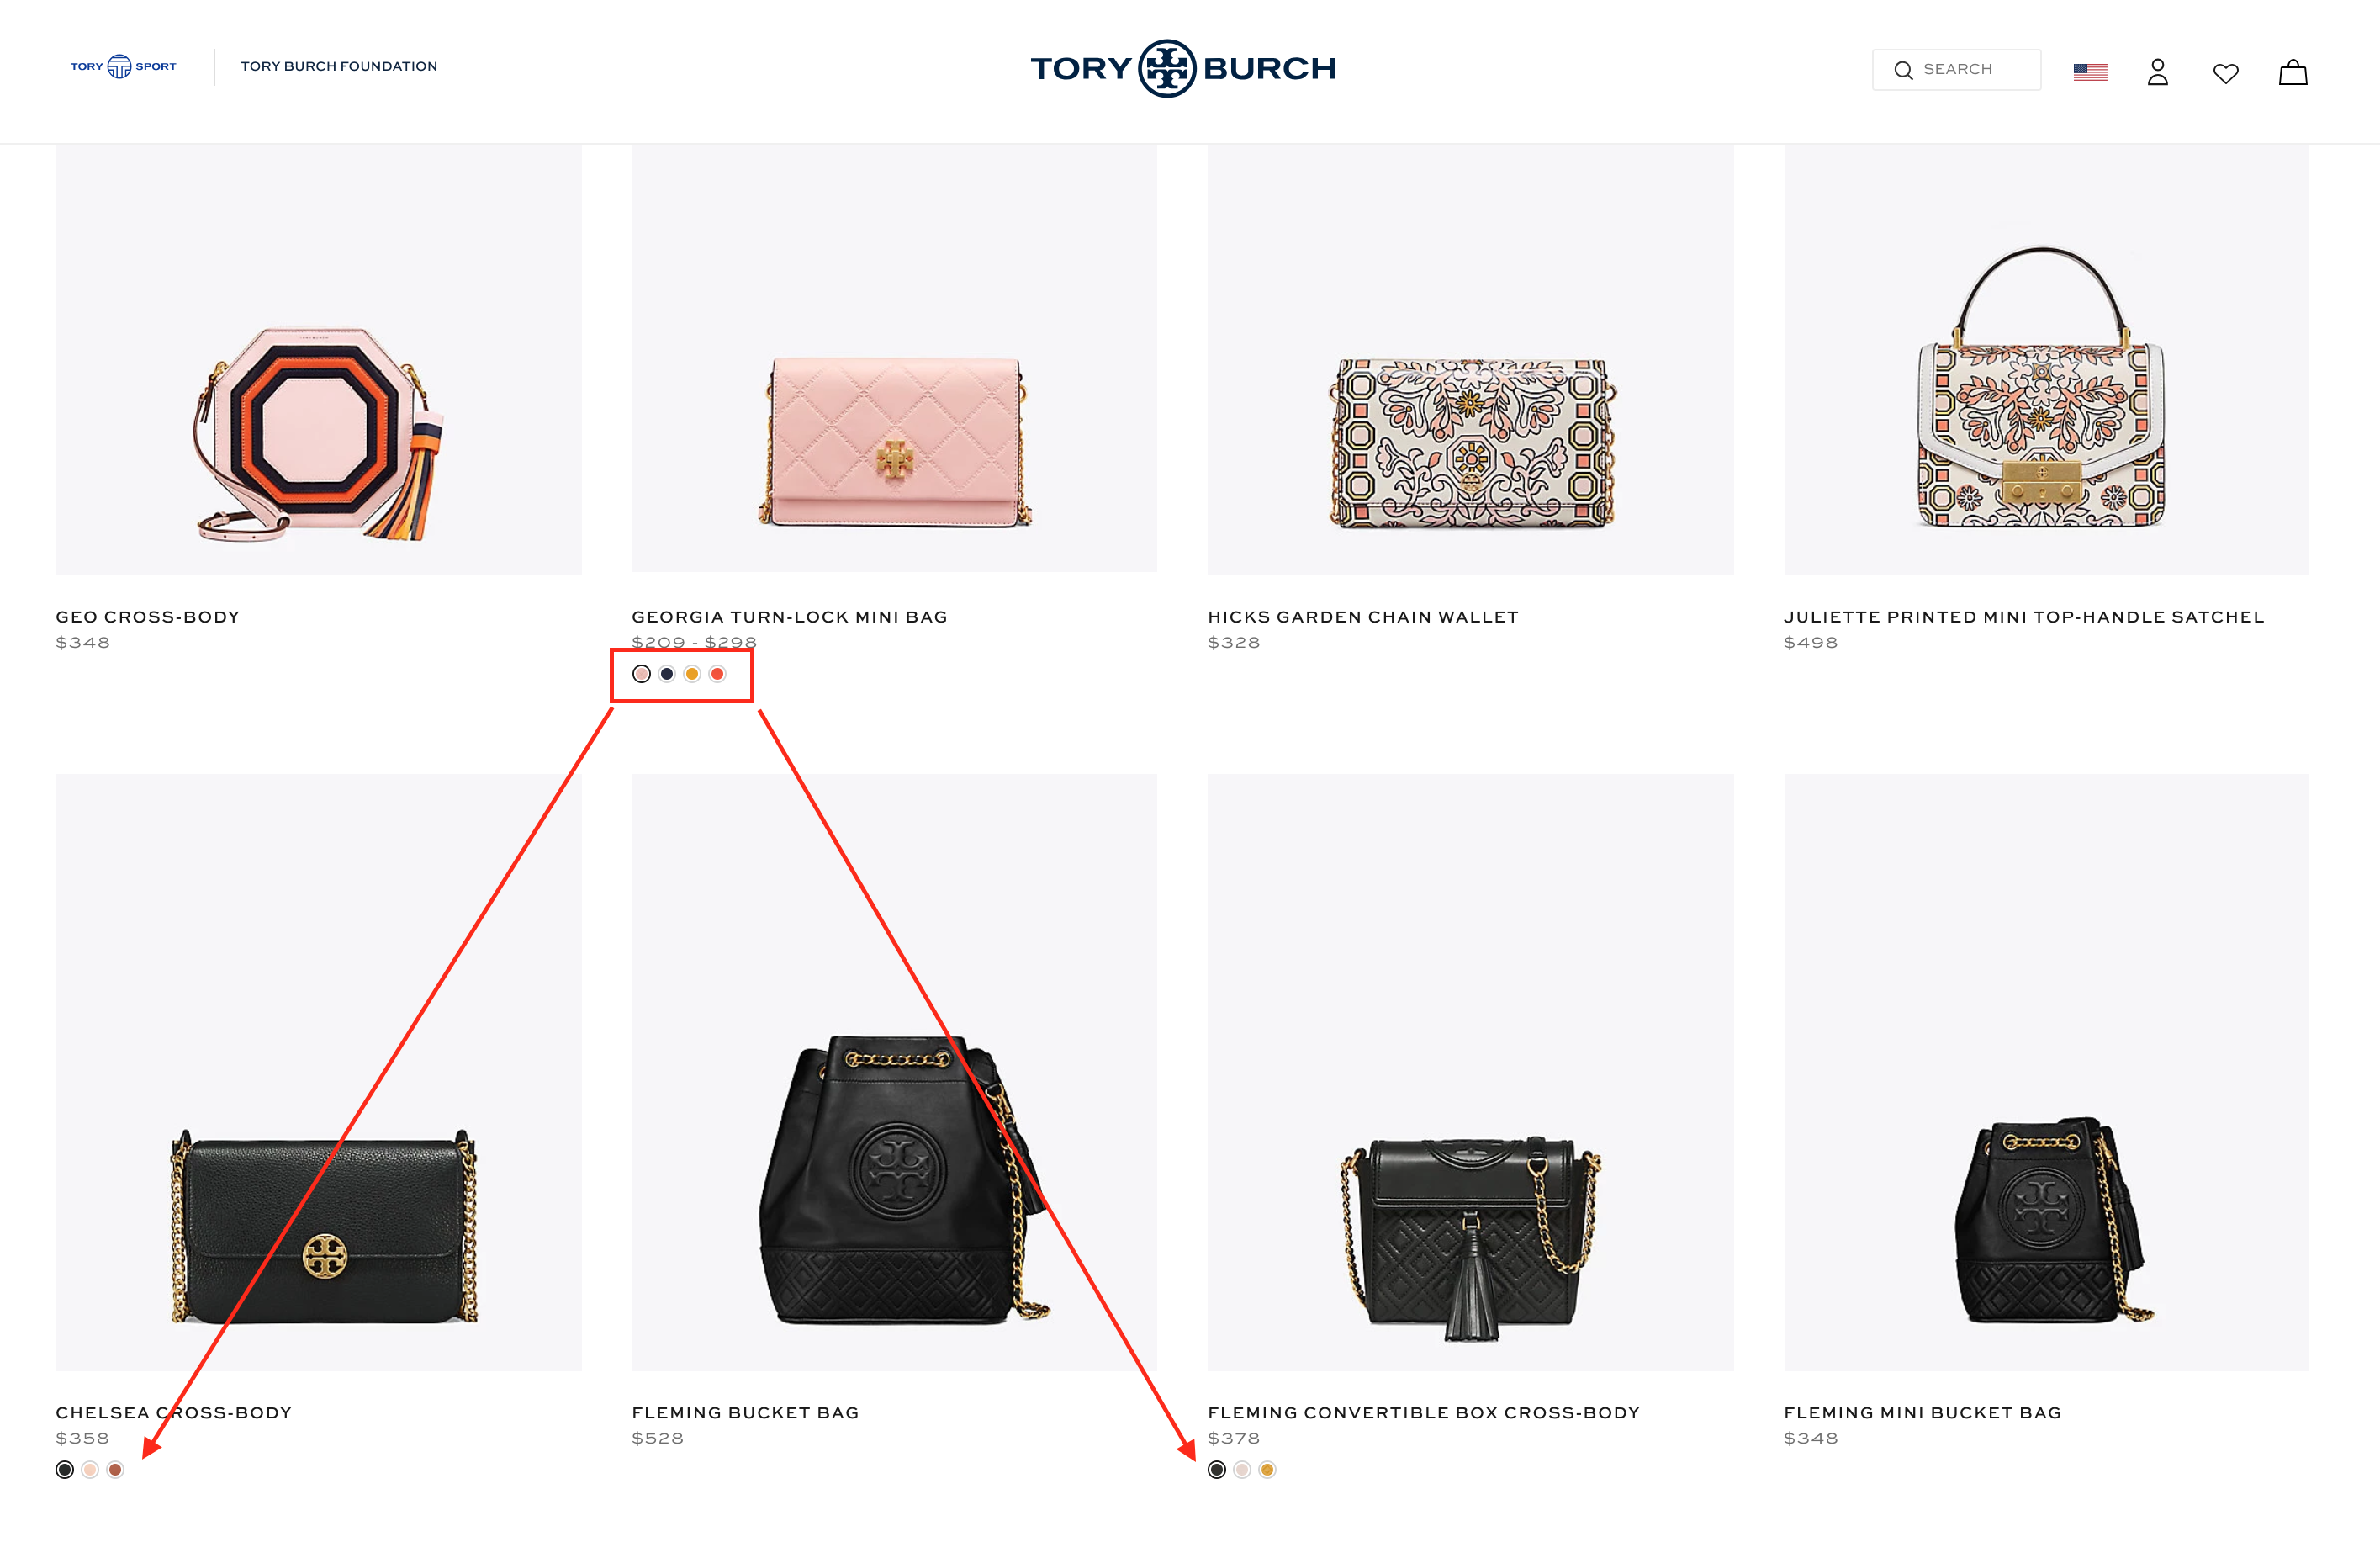 tory-burch-merchandising